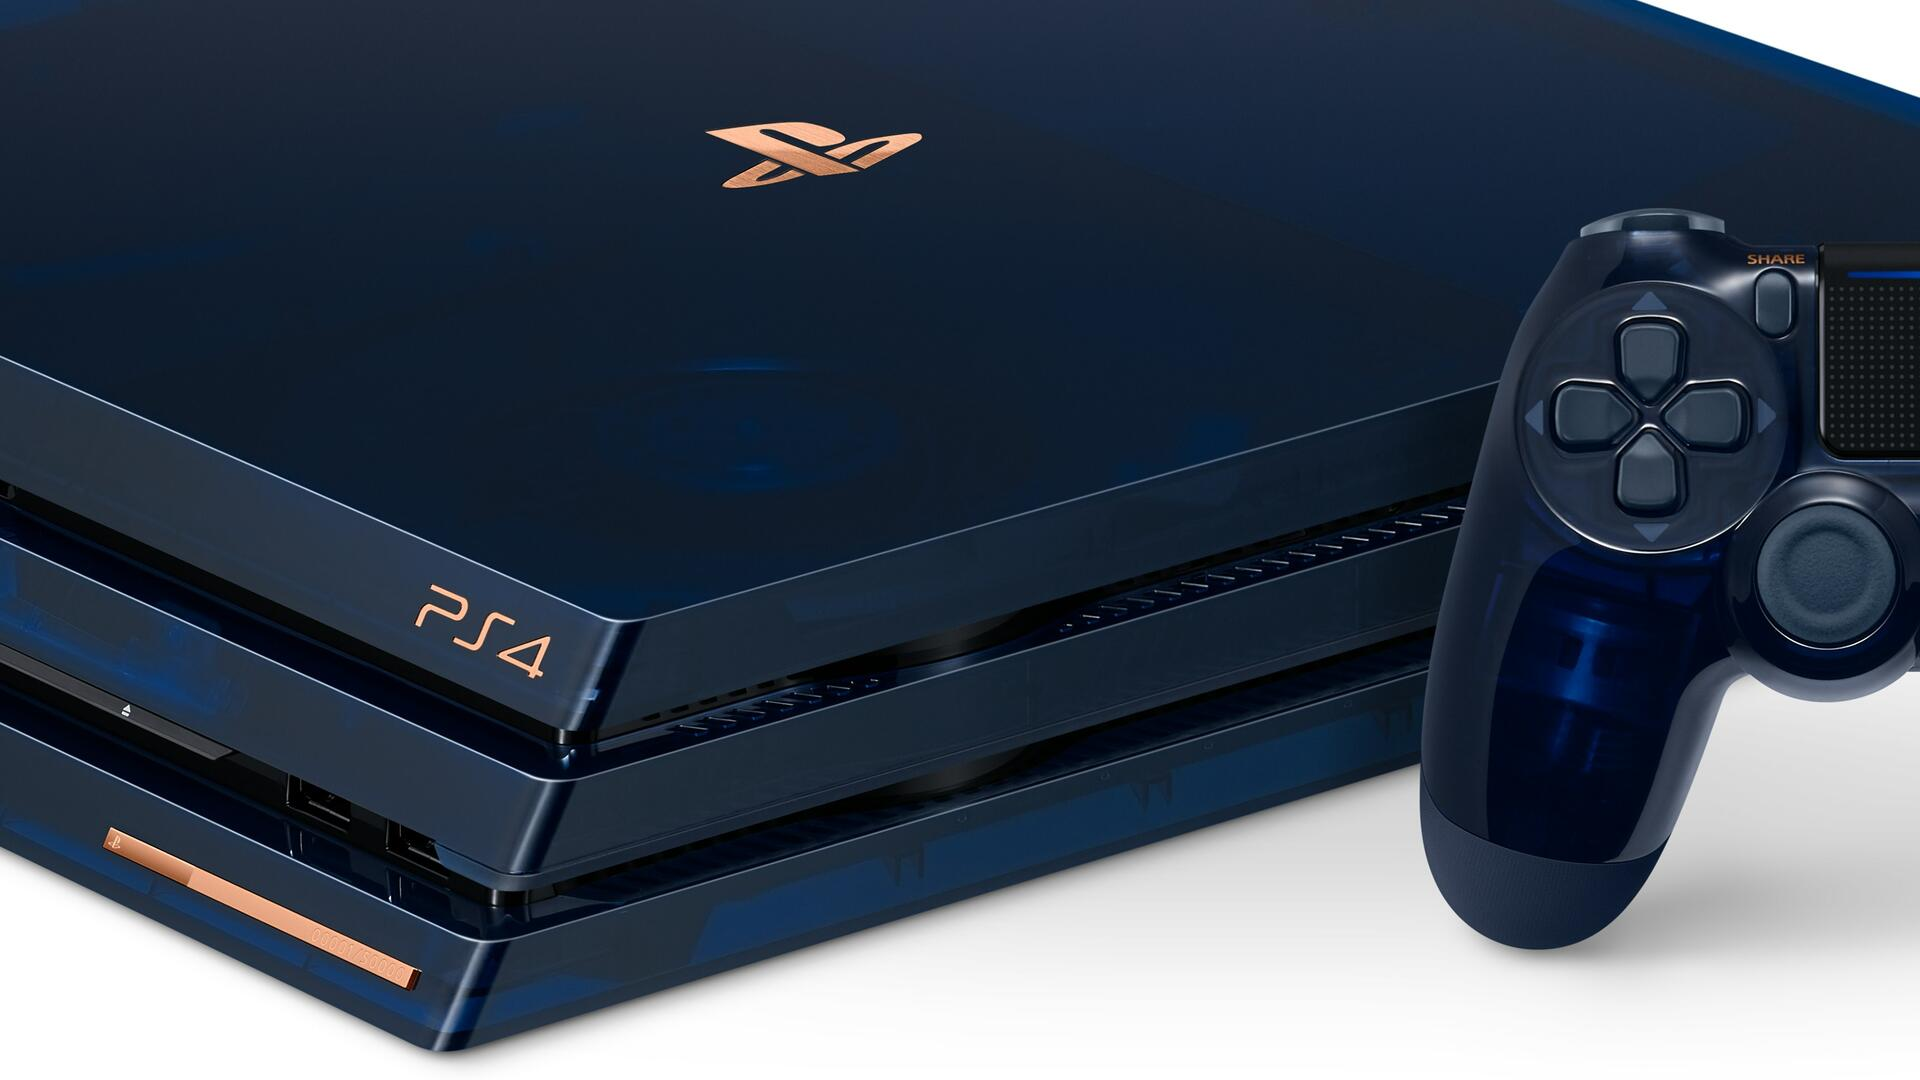 500 Million Limited Edition PS4 Pro is Available Now in US